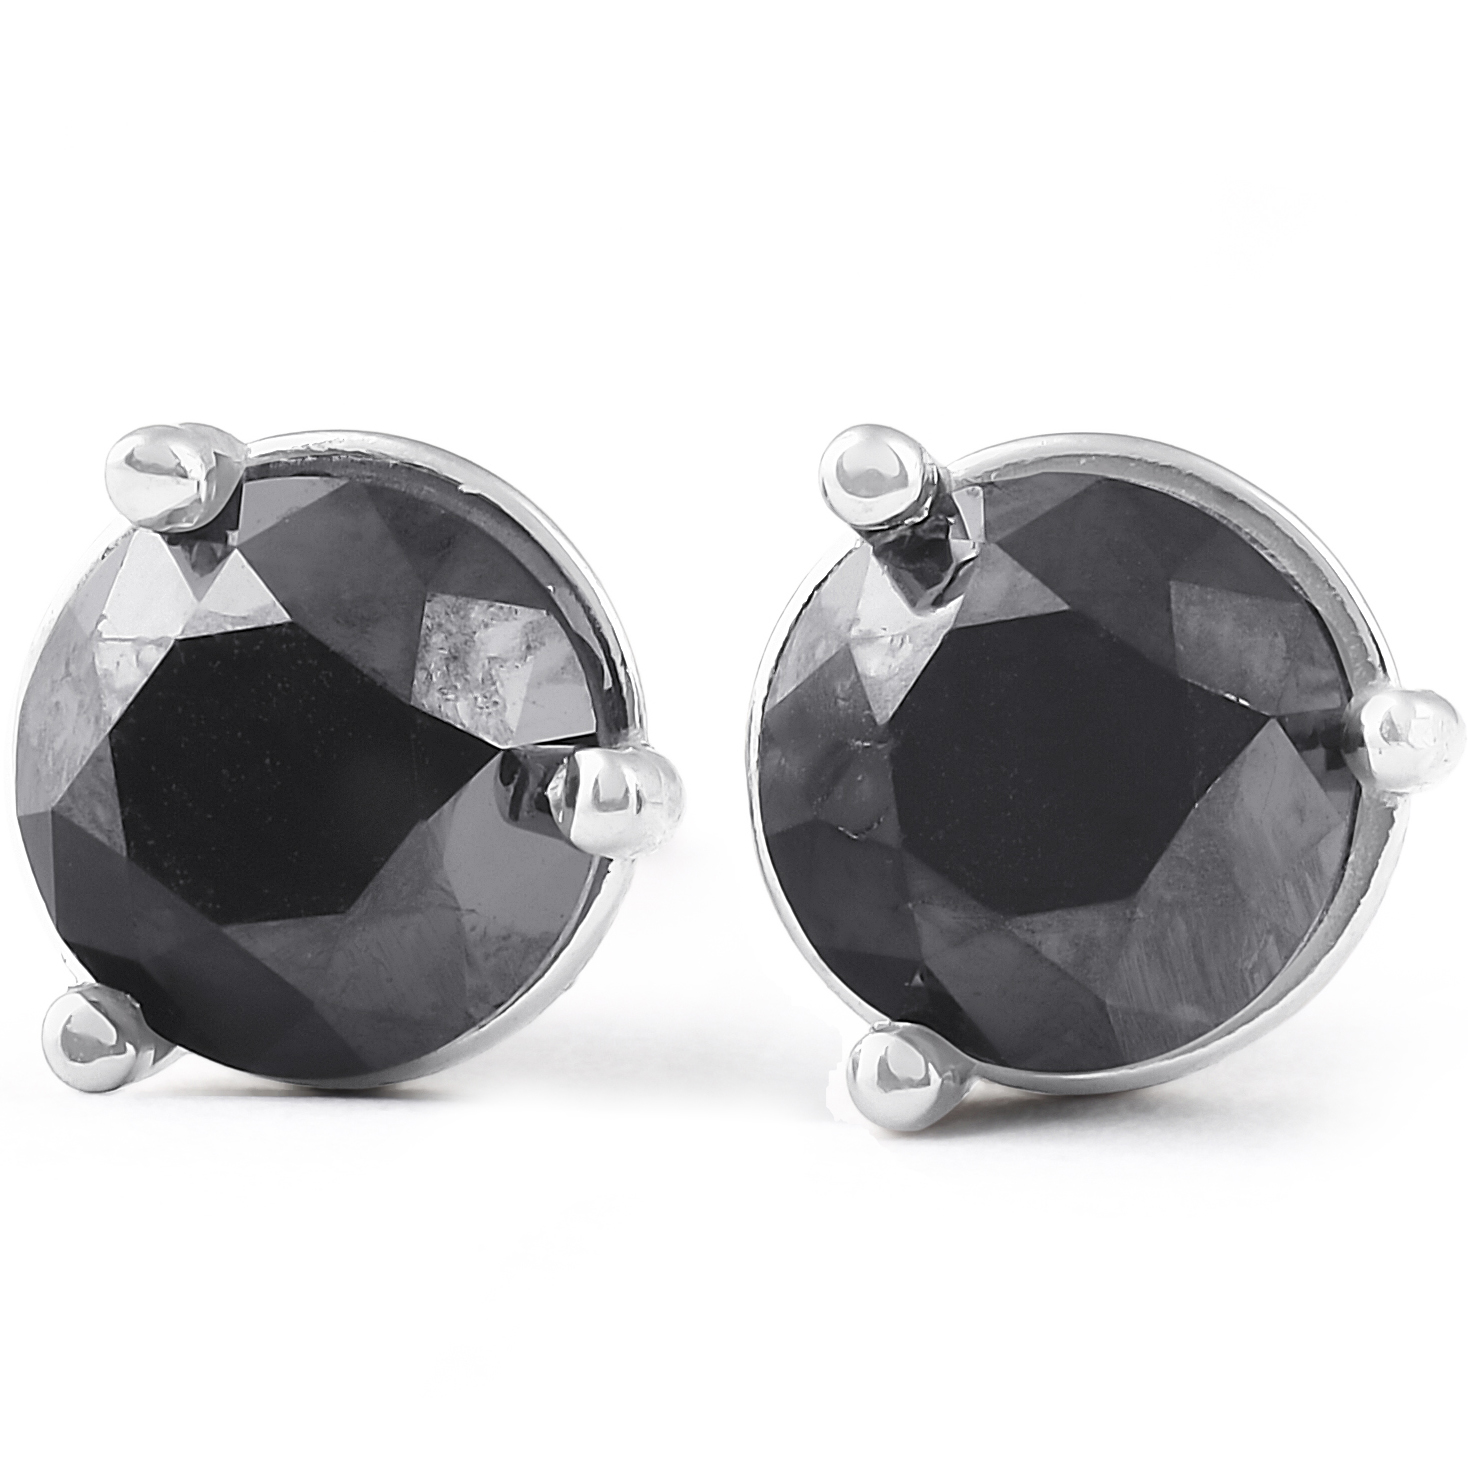 290f3f285 Details about 2 Ct Black Diamond Martini 3-Prong Studs 14k White Gold  Earrings